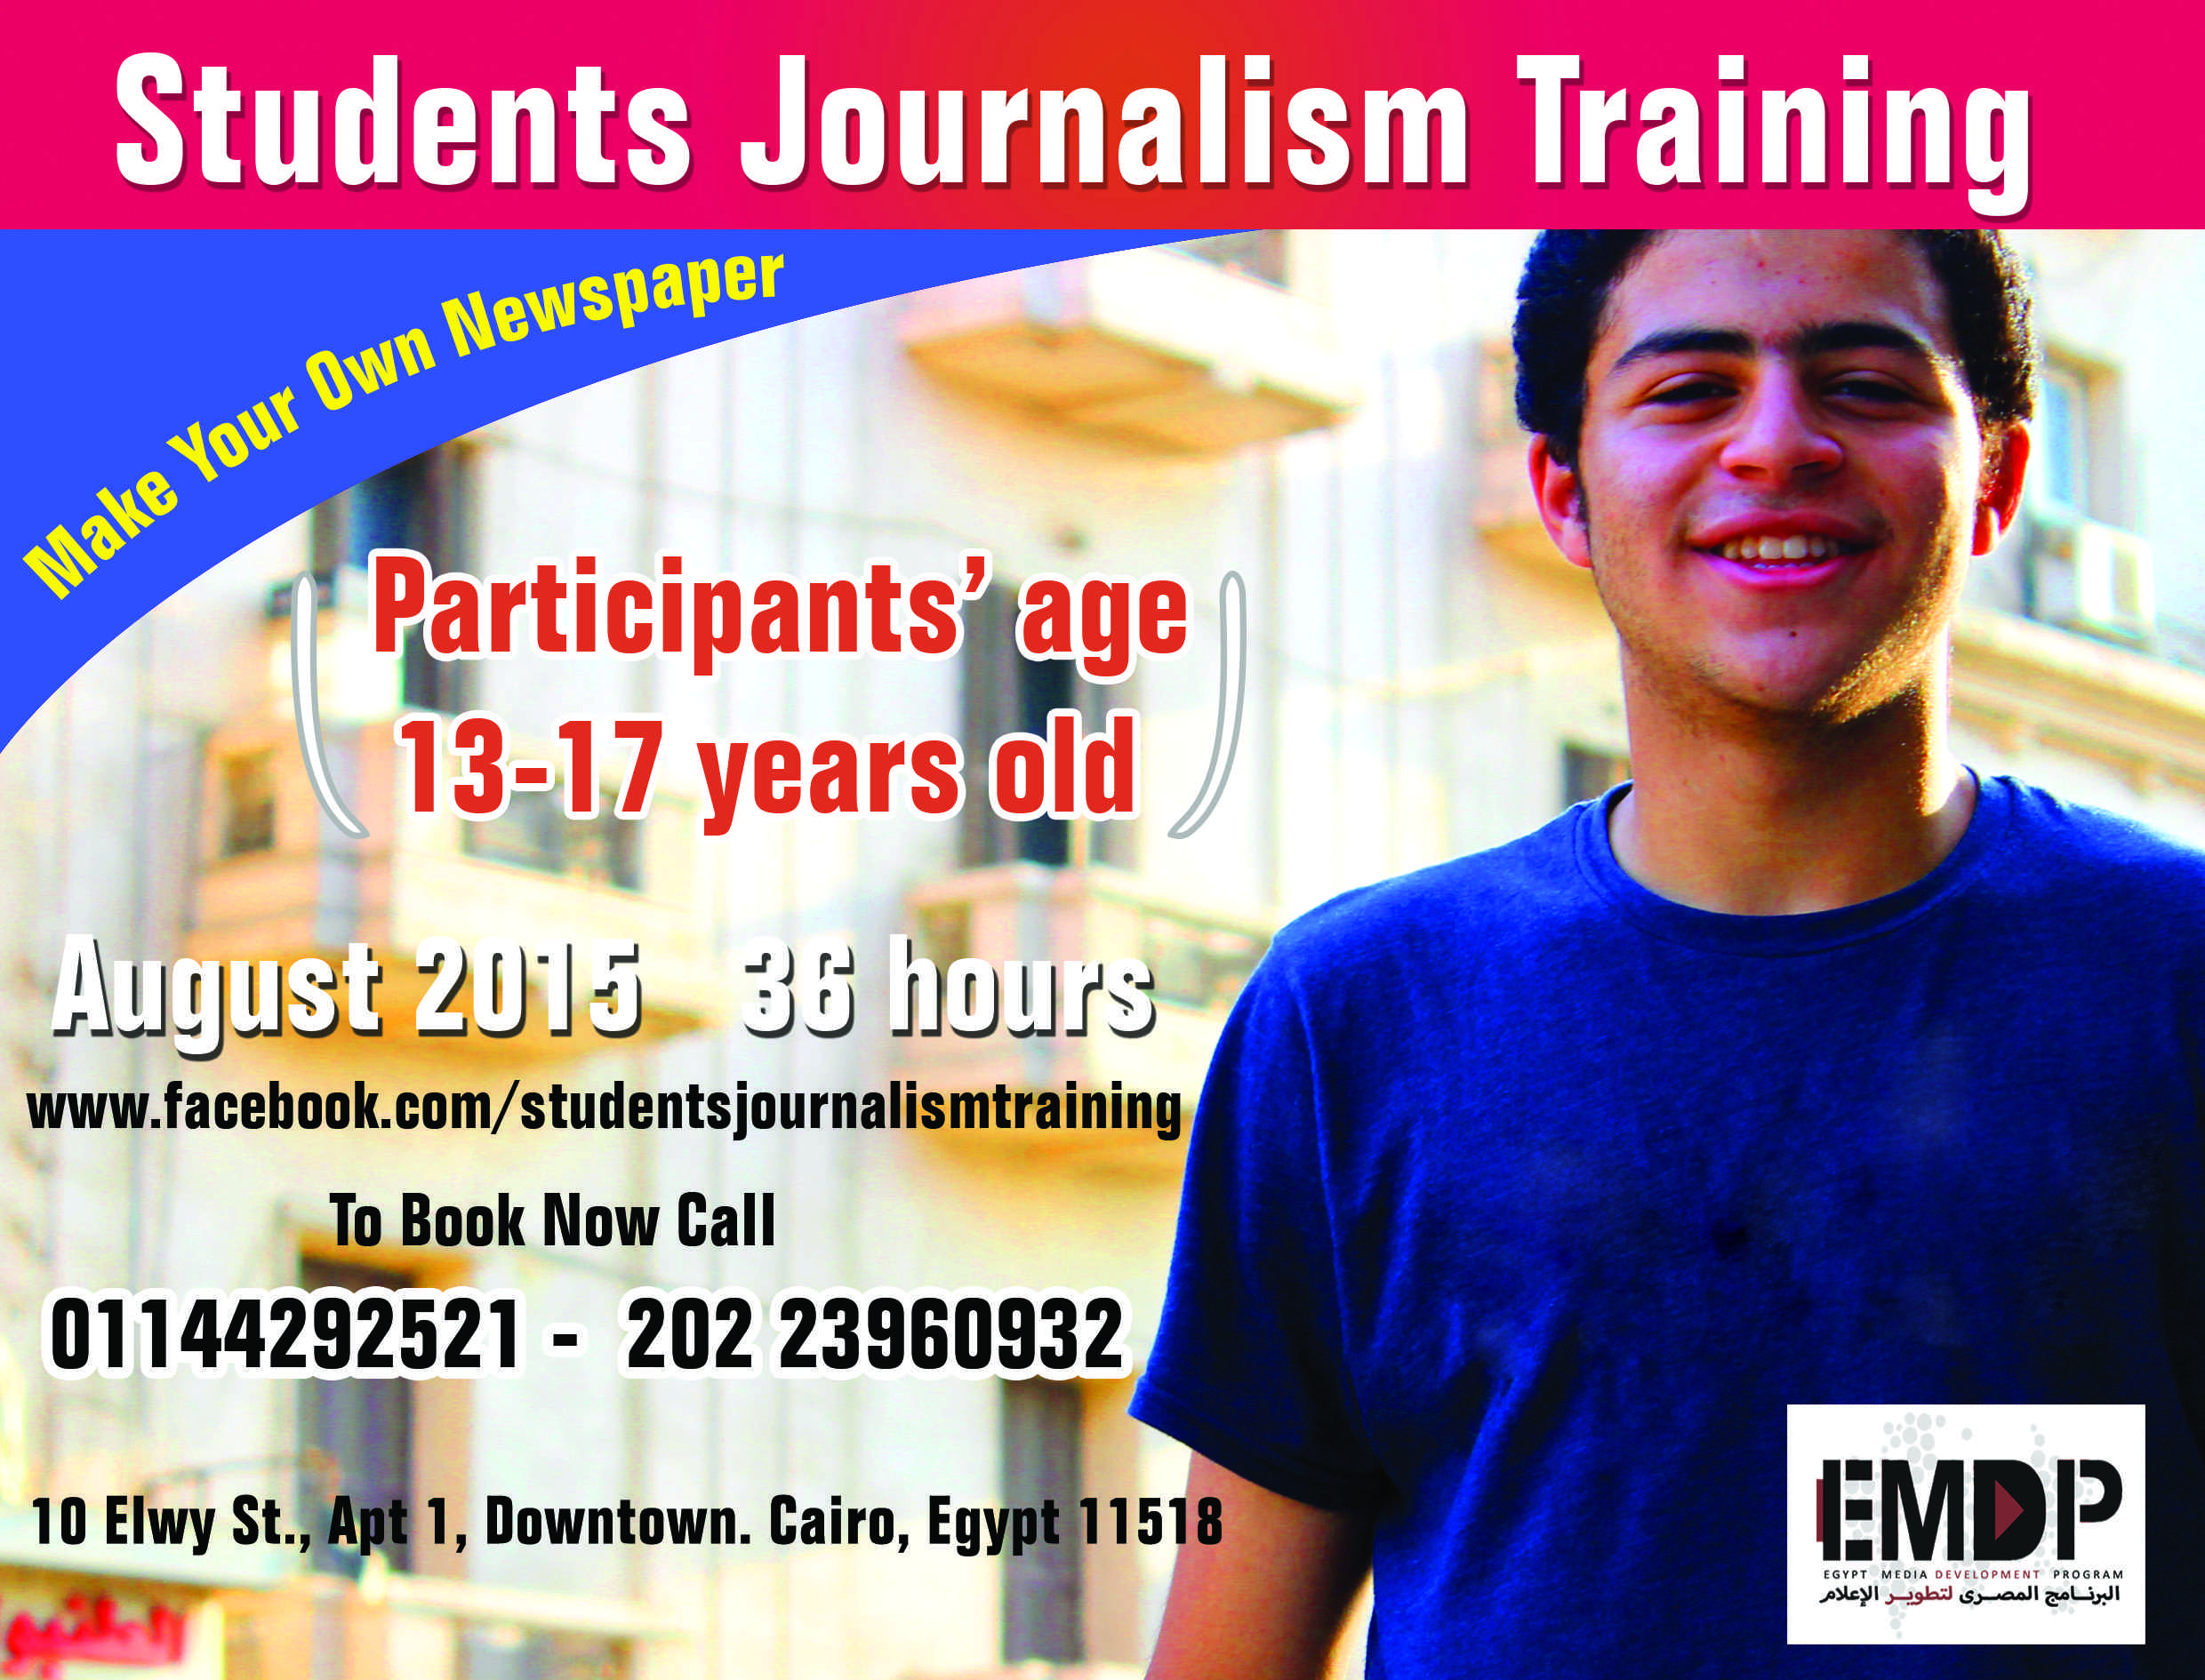 Student Journalism Training 2